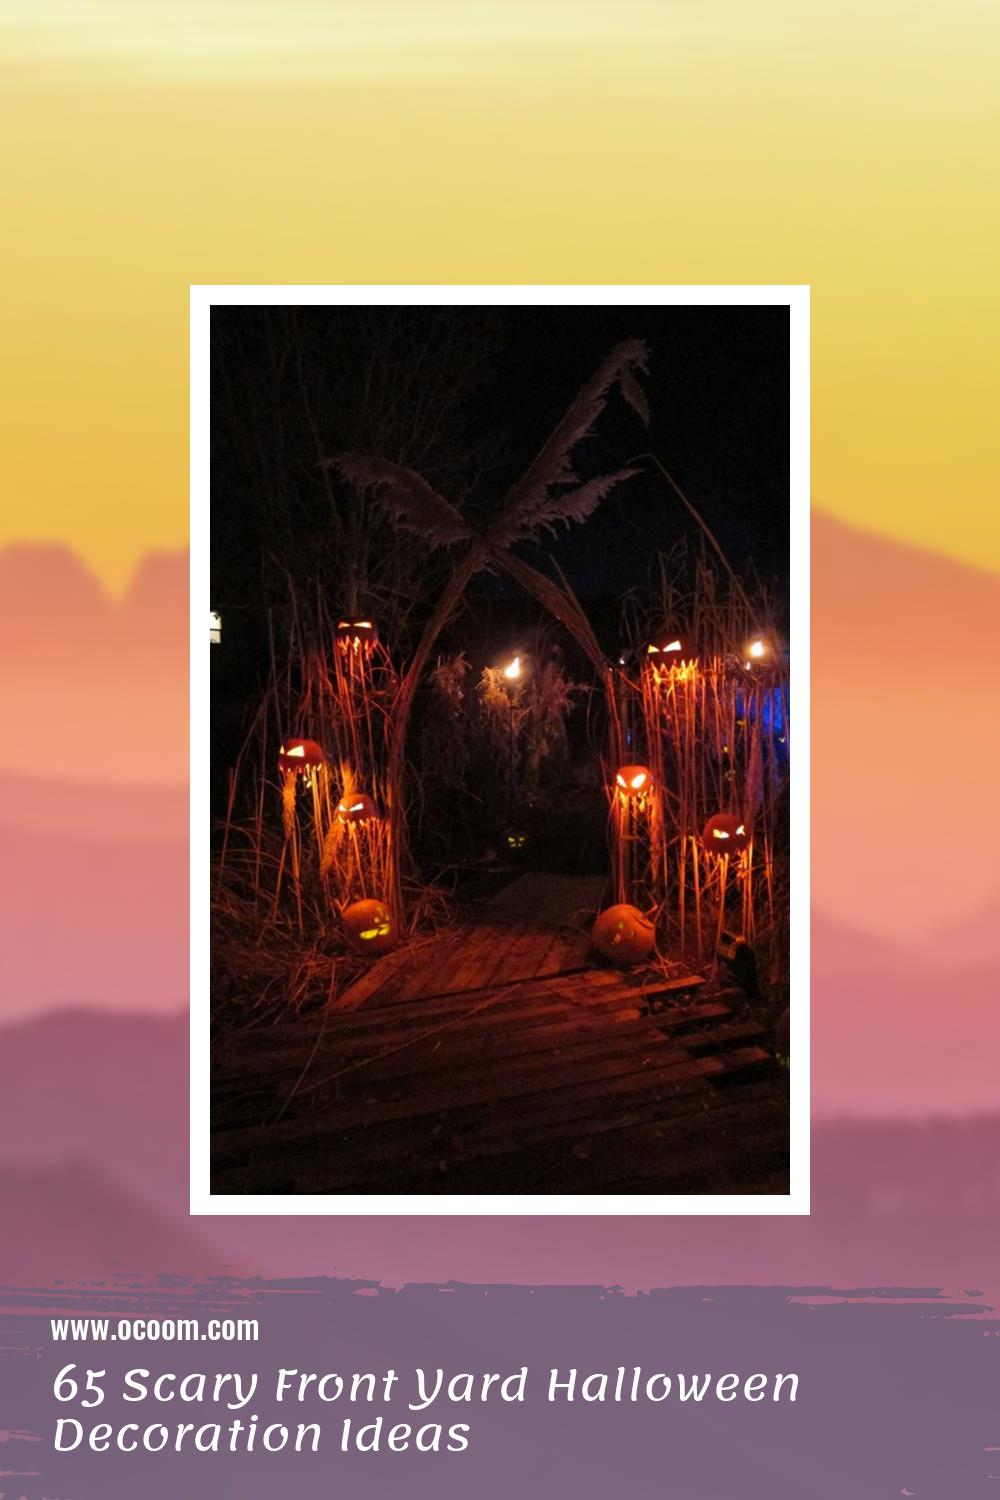 65 Scary Front Yard Halloween Decoration Ideas 61